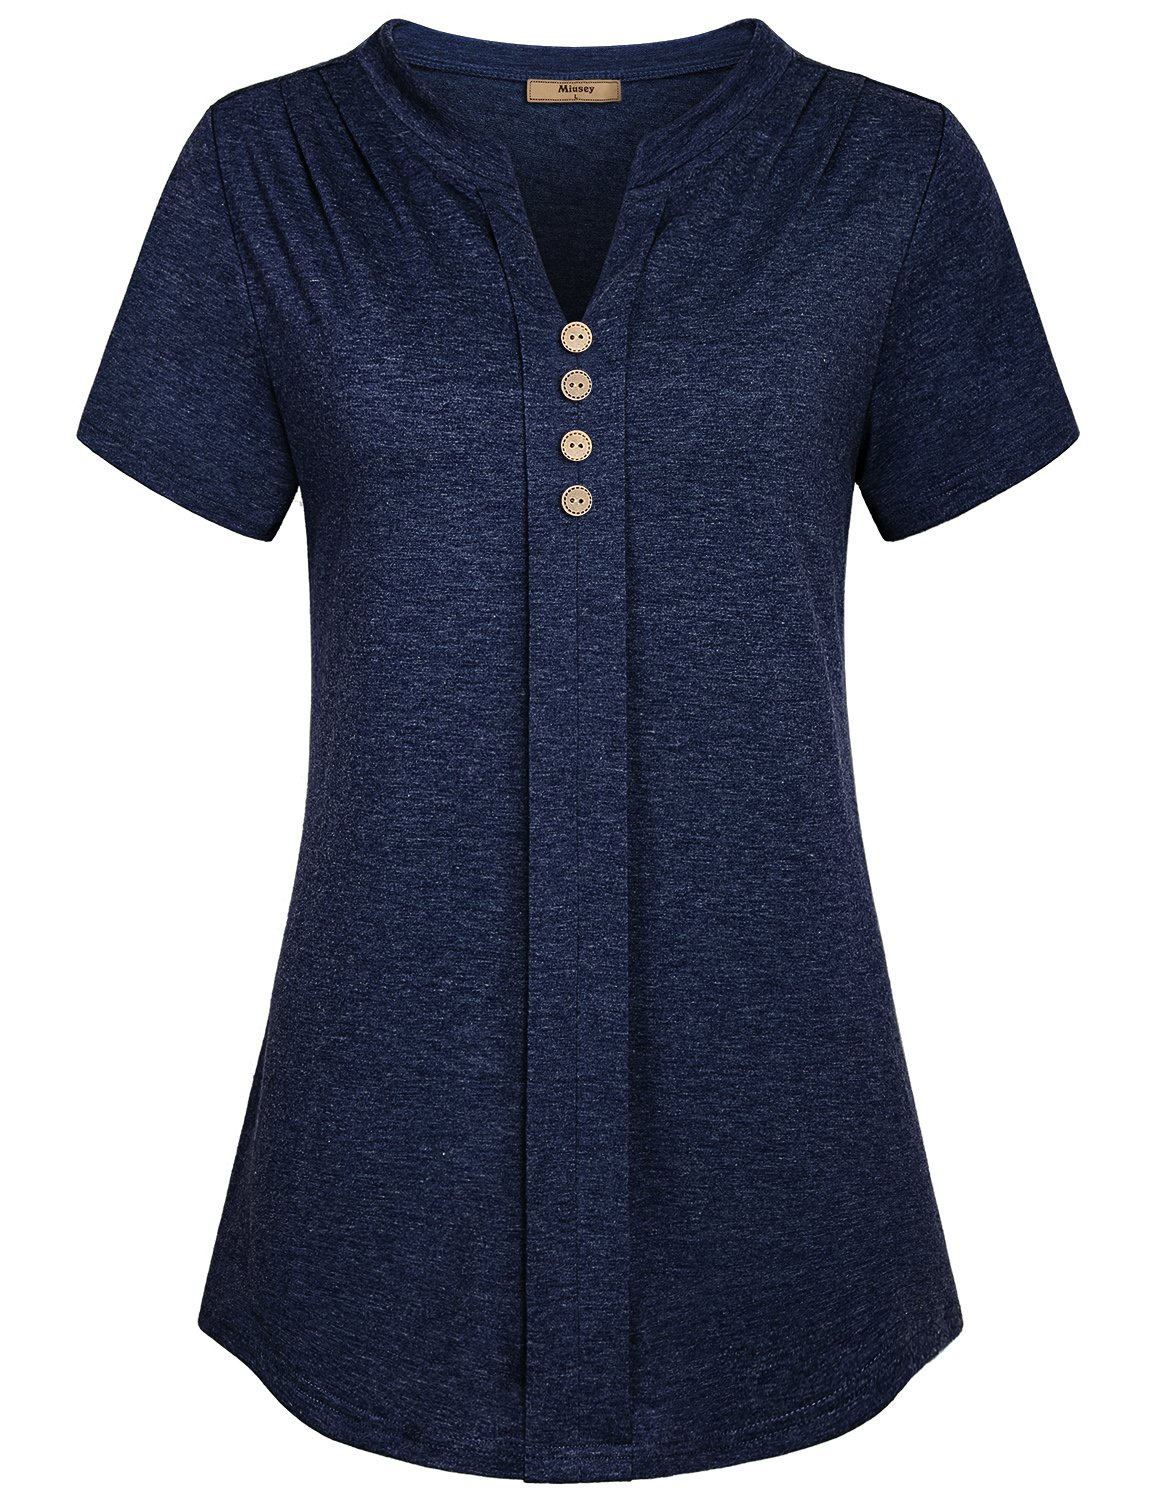 Miusey Short Sleeve Tunic Tops for Women, Casual Notch V Neck Shirring Details on Shoulder High Flexible Material Henley Style Fold Front Design Energetic Charming Sports T Shirts Royal Blue Medium